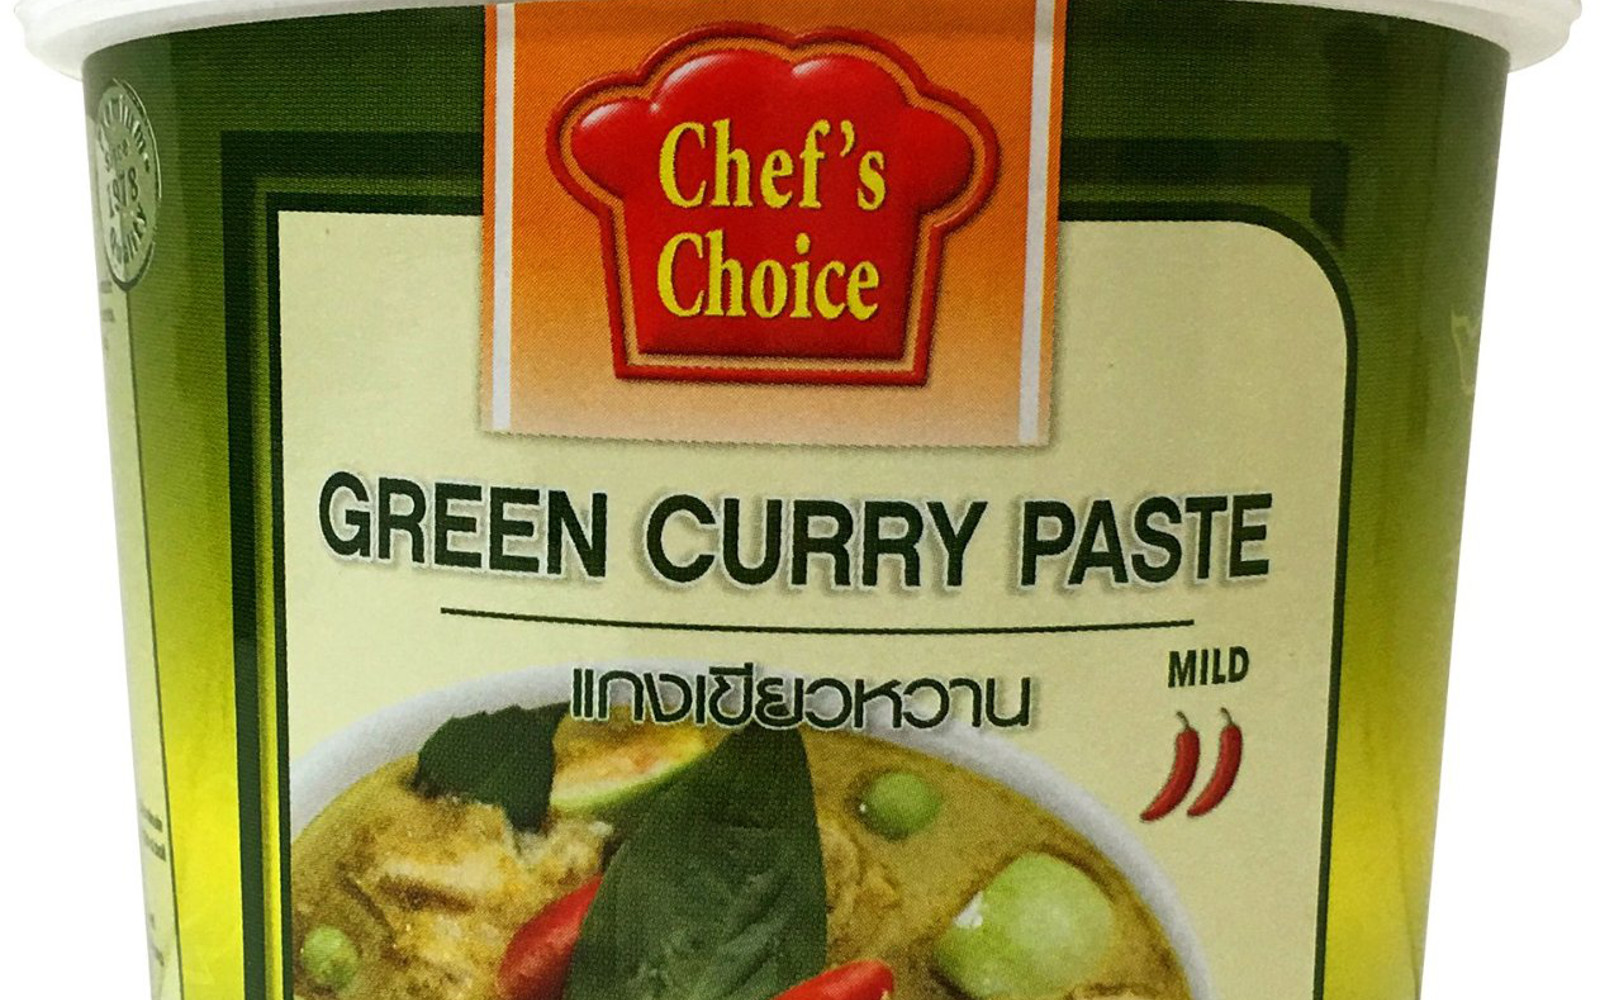 Chef's Choice Green Curry Paste